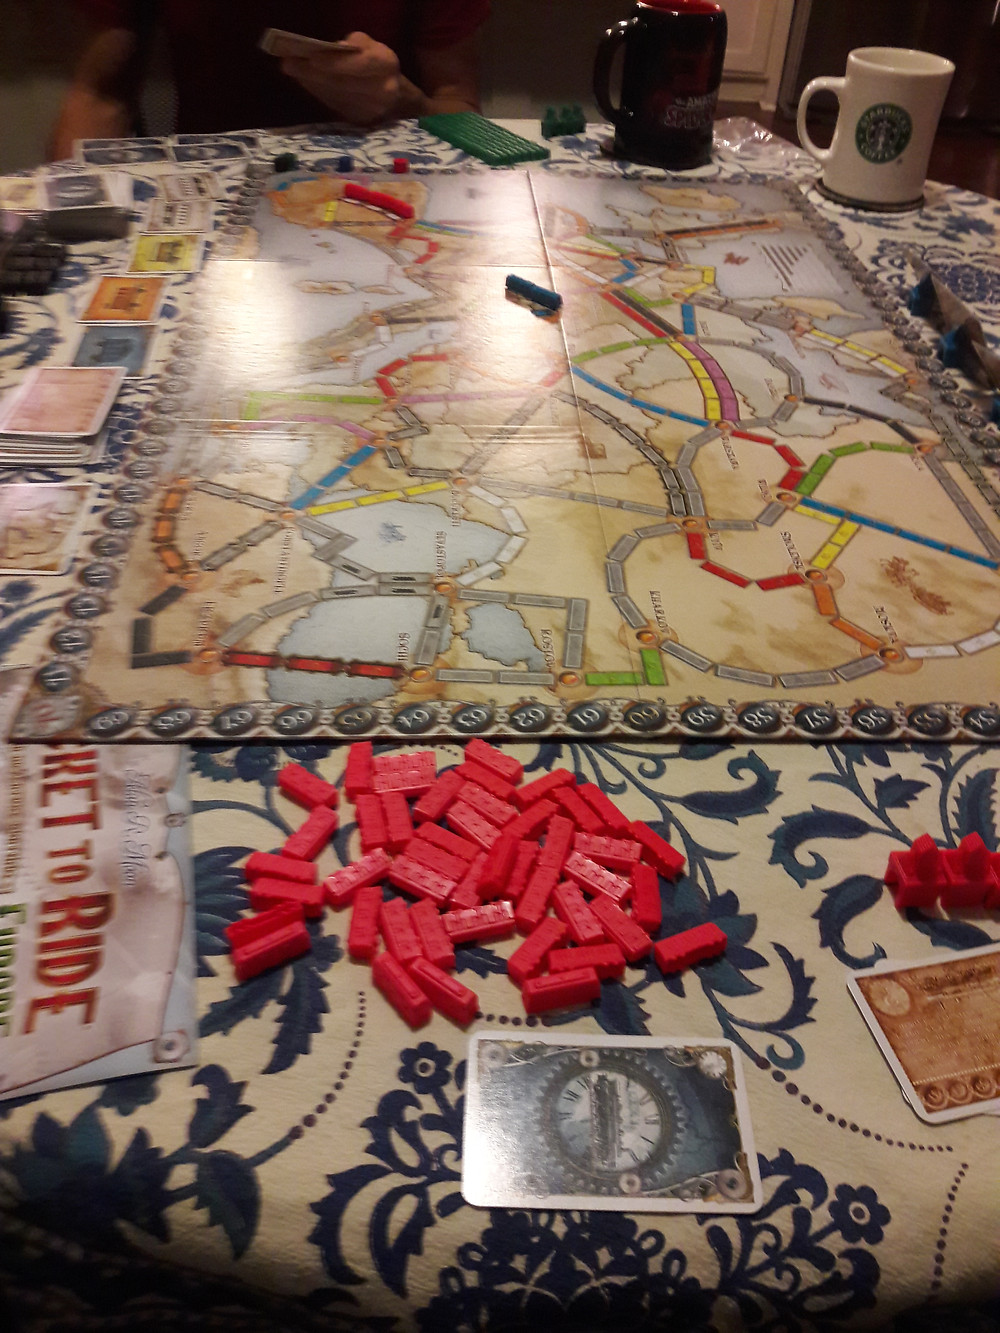 Ticket to Ride, one my favorite games